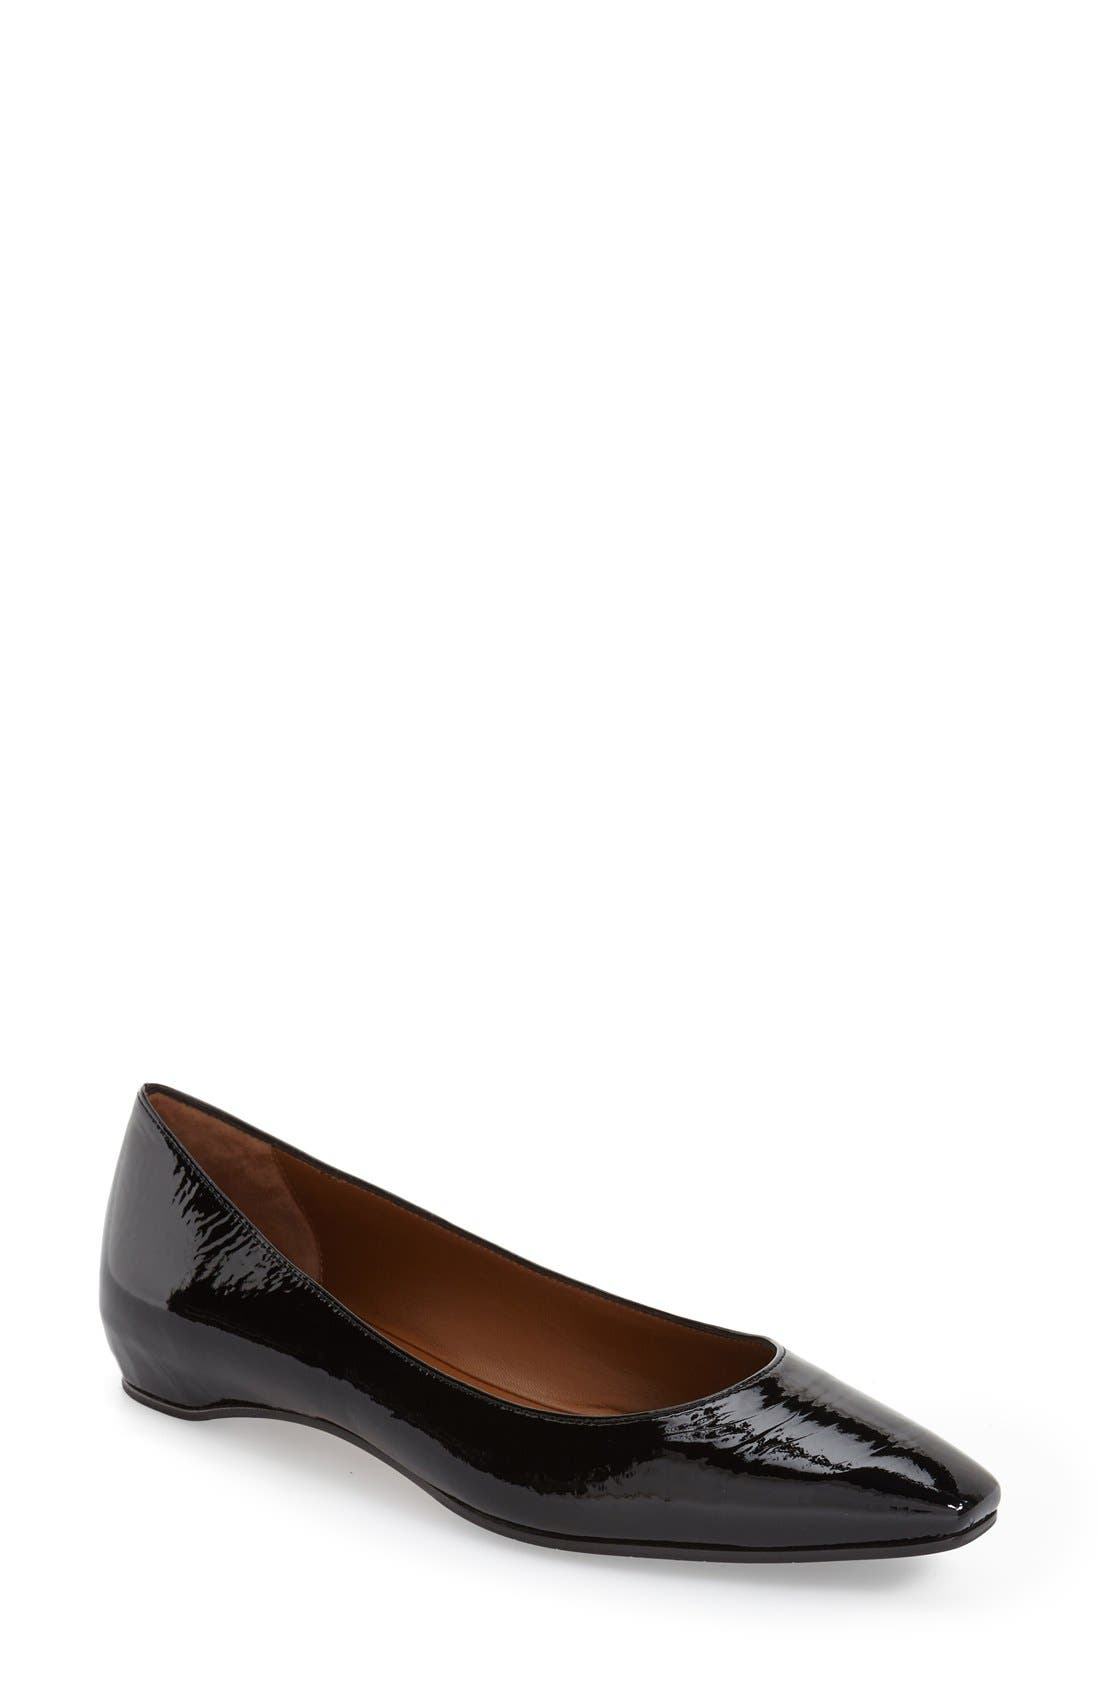 Marcella Weatherproof Leather Flat,                         Main,                         color, Black